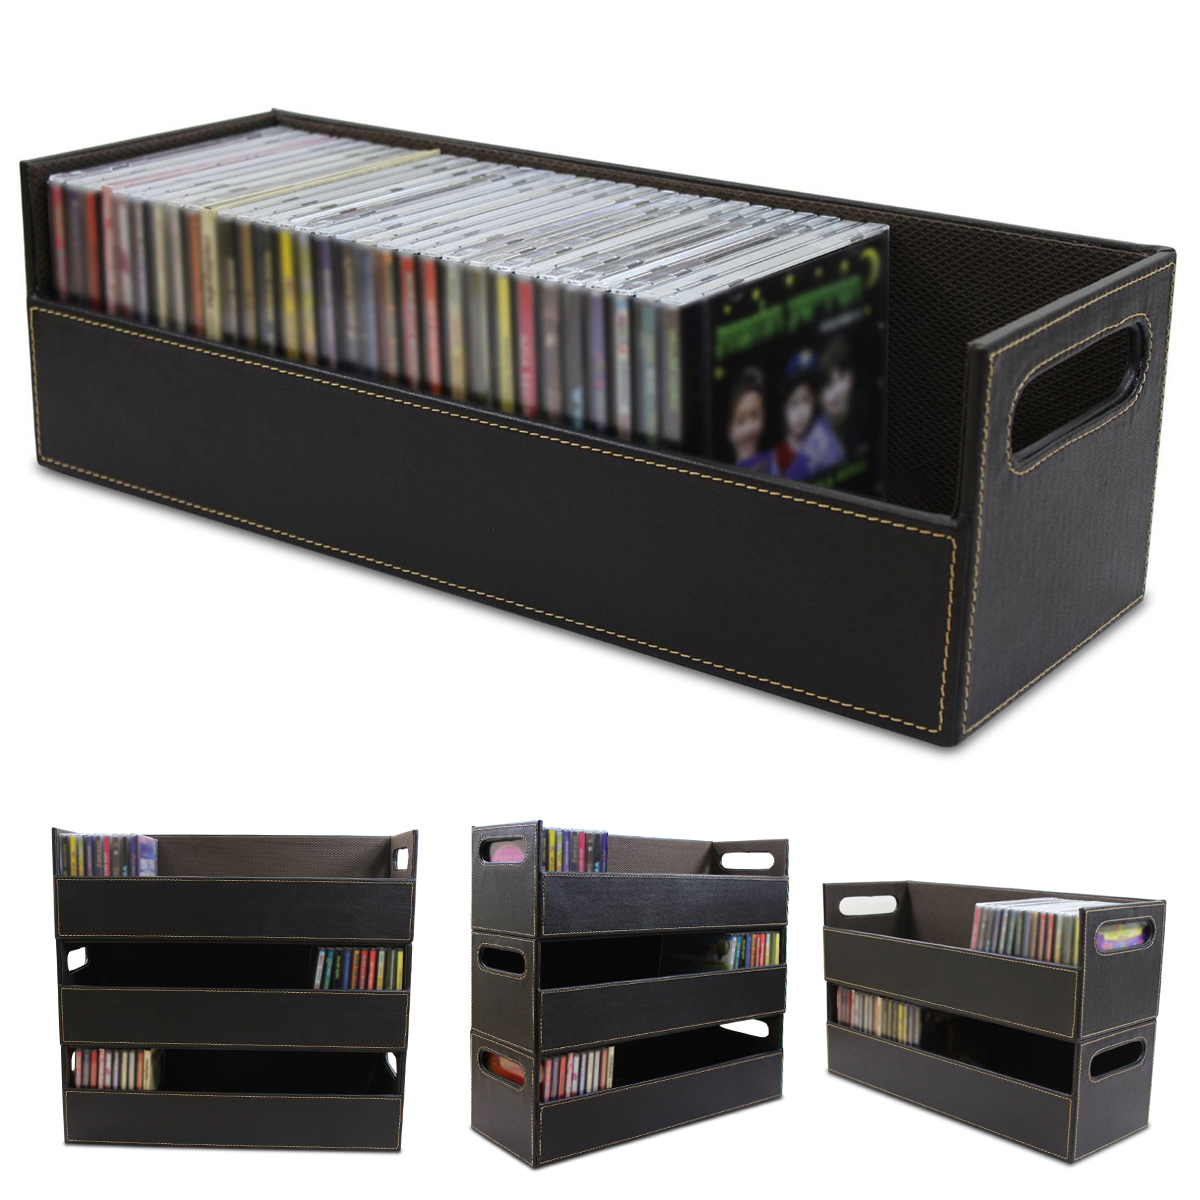 Dvd Aufbewahrungsbox Cd Dvd Disk Storage Box Case Rack Holder Stacking Tray Shelf Space Organizer | Alexnld.com